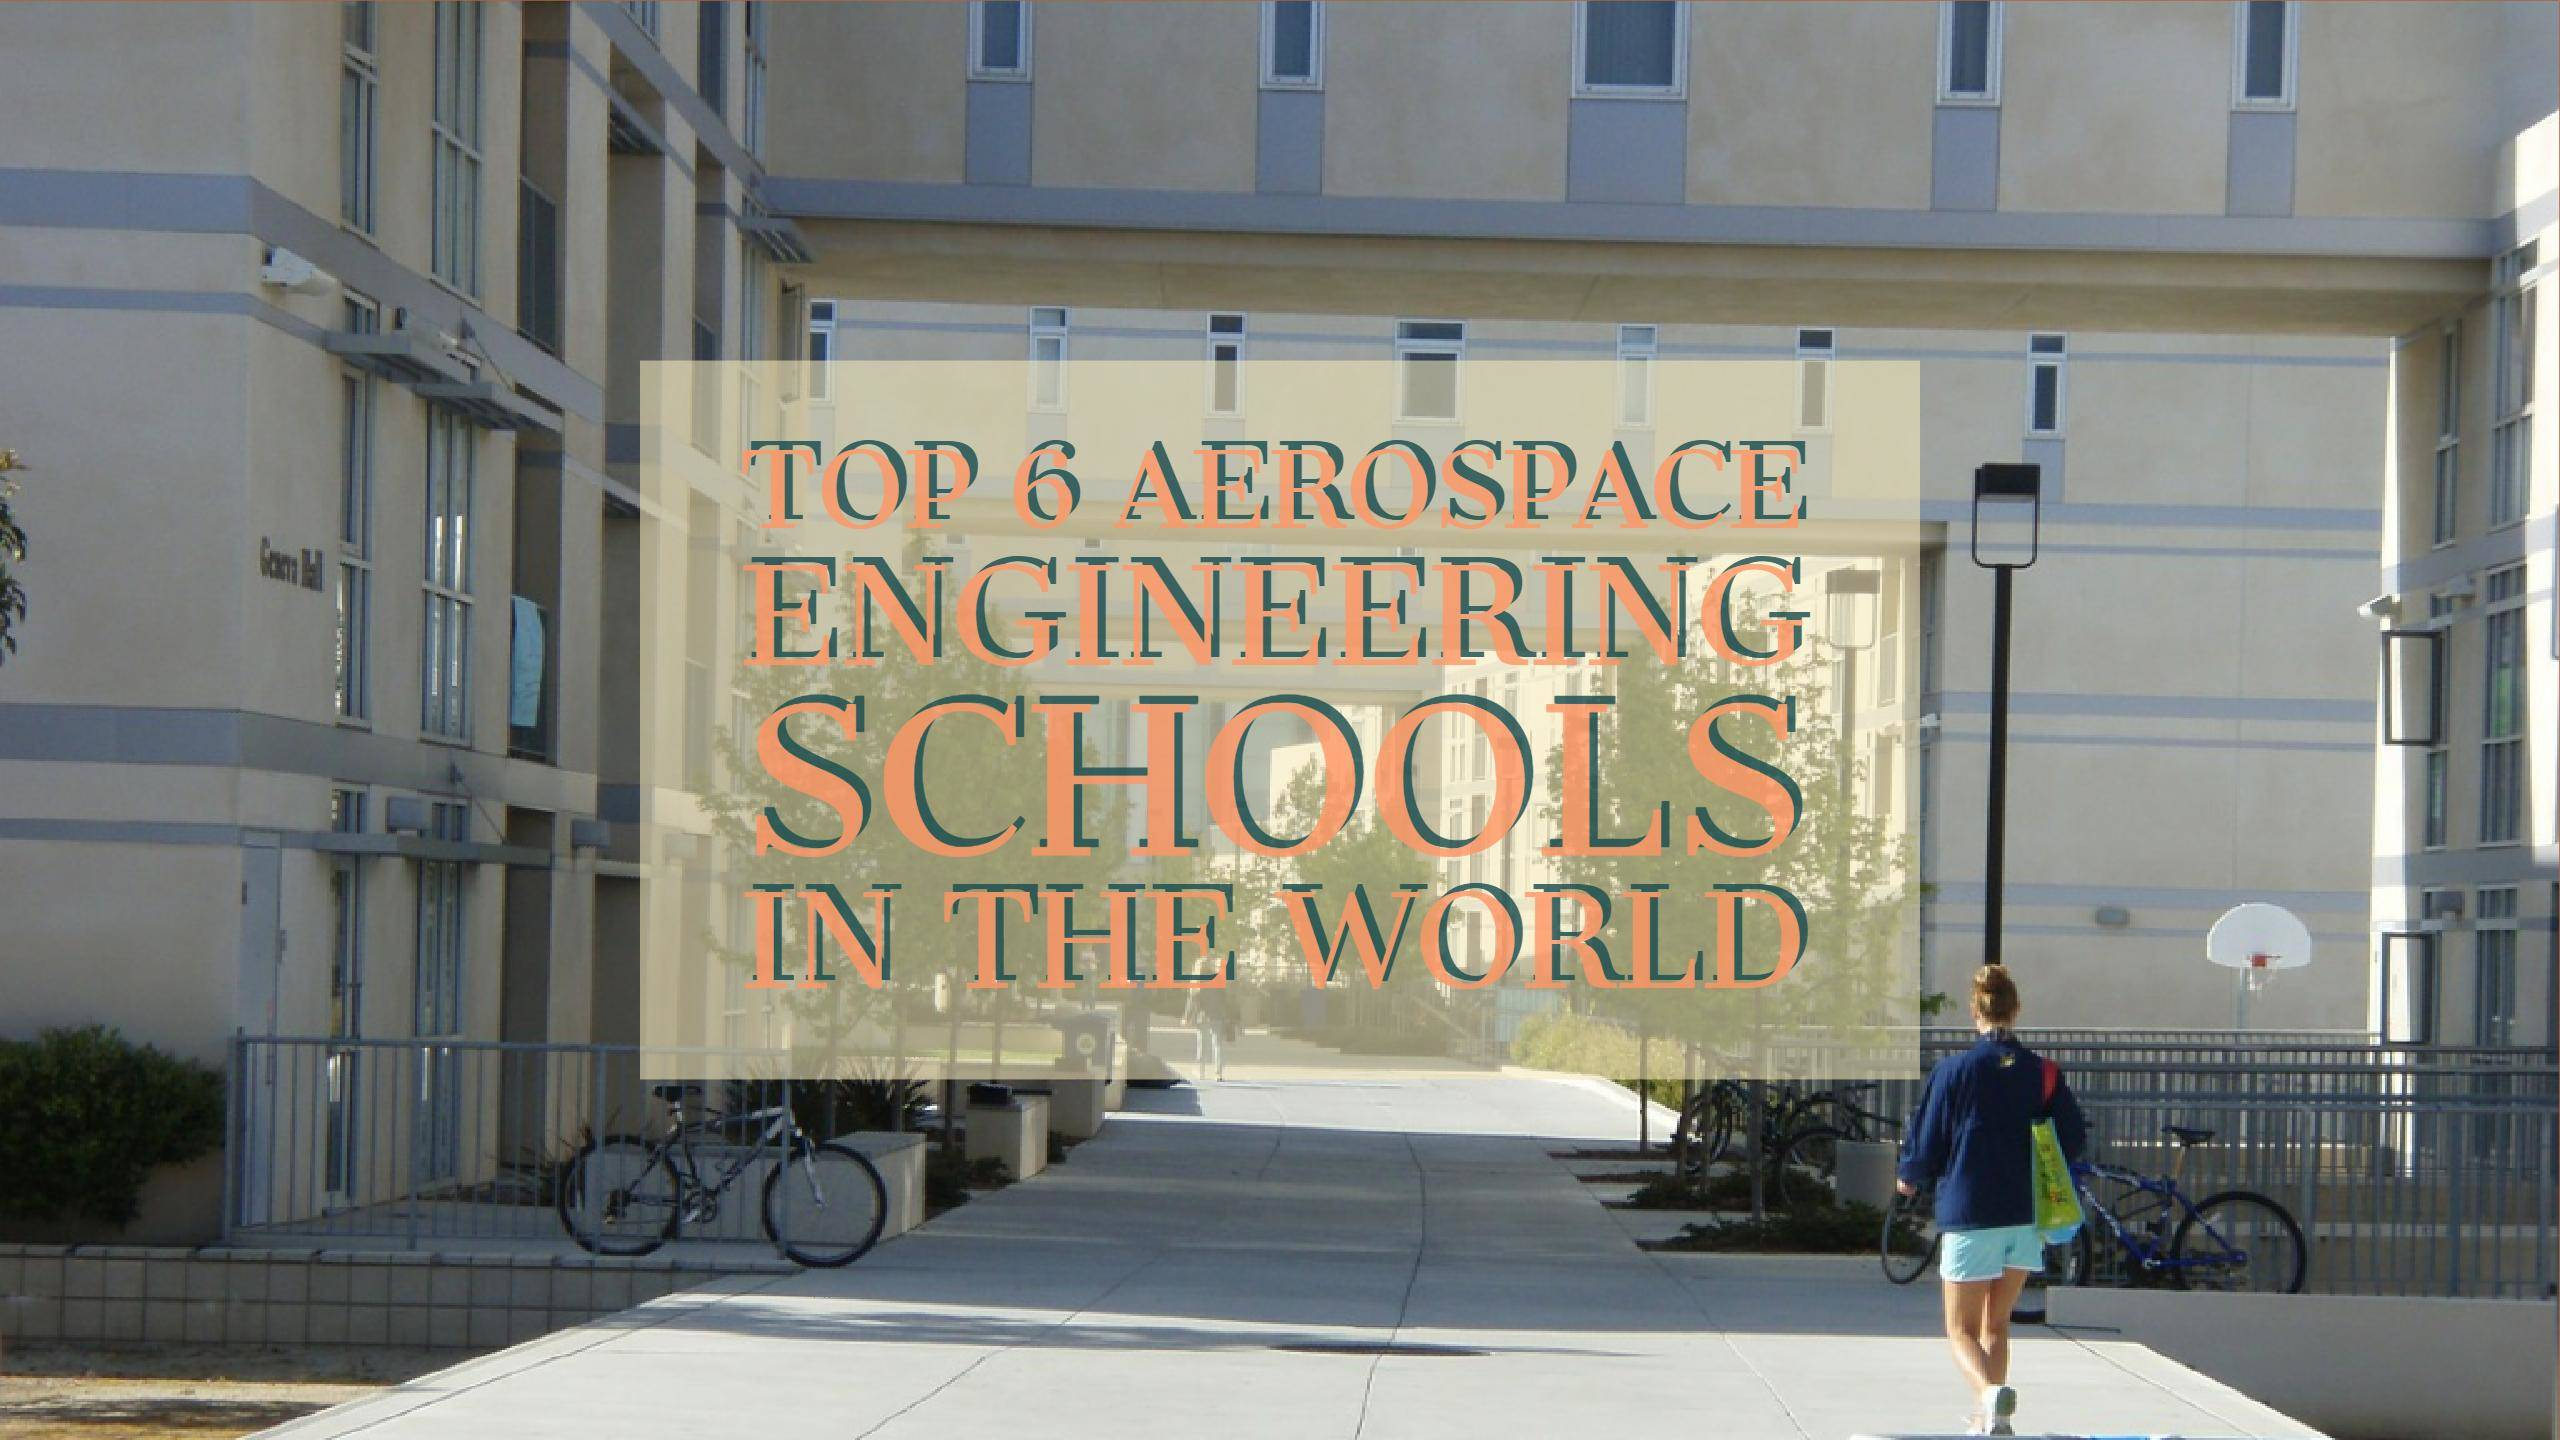 Aerospace Engineering Colleges : Top aerospace engineering schools in the world